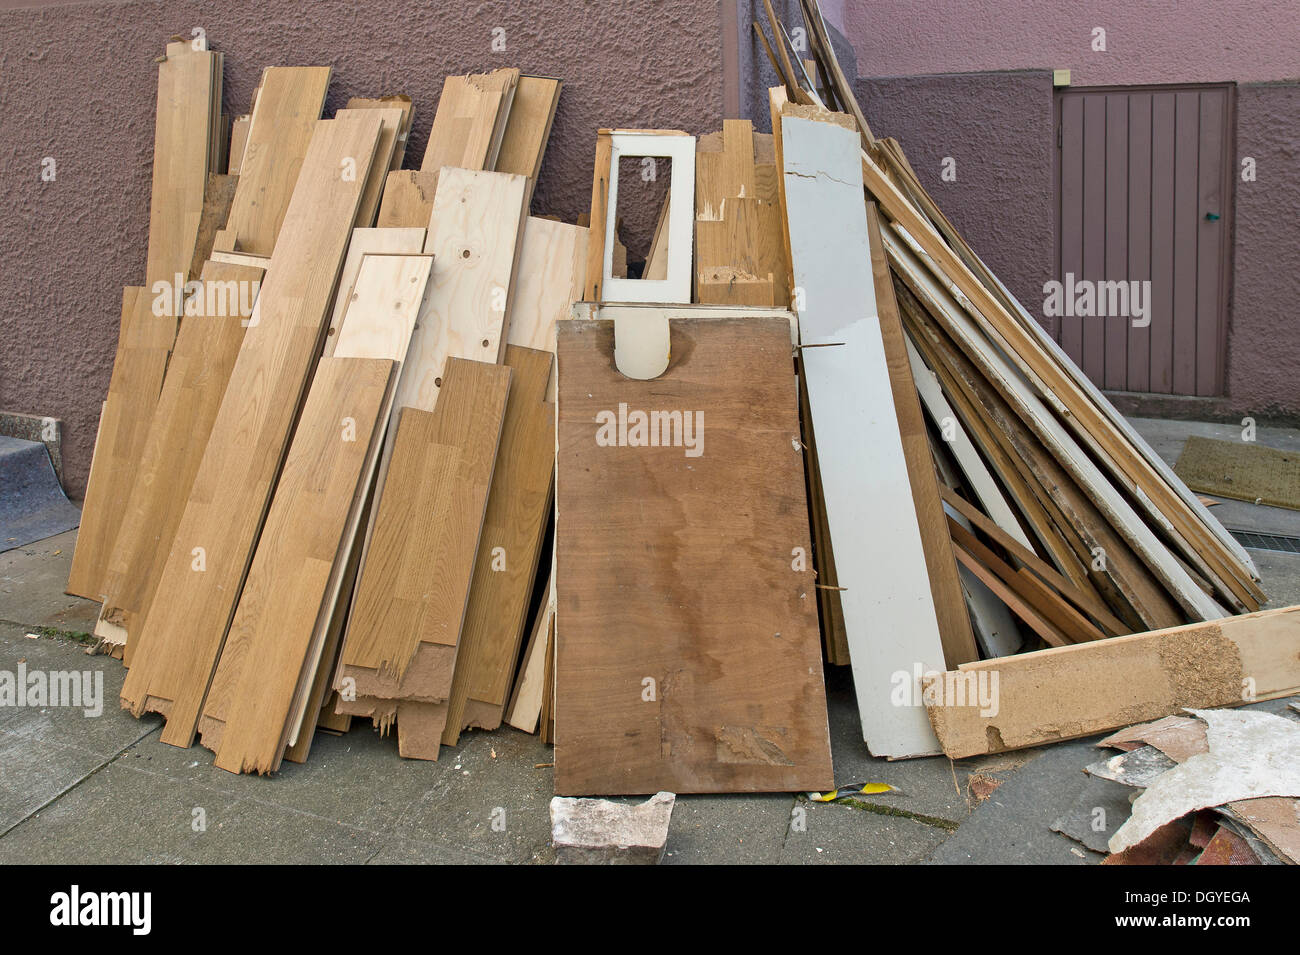 Wood Flooring Stock Photos Amp Wood Flooring Stock Images